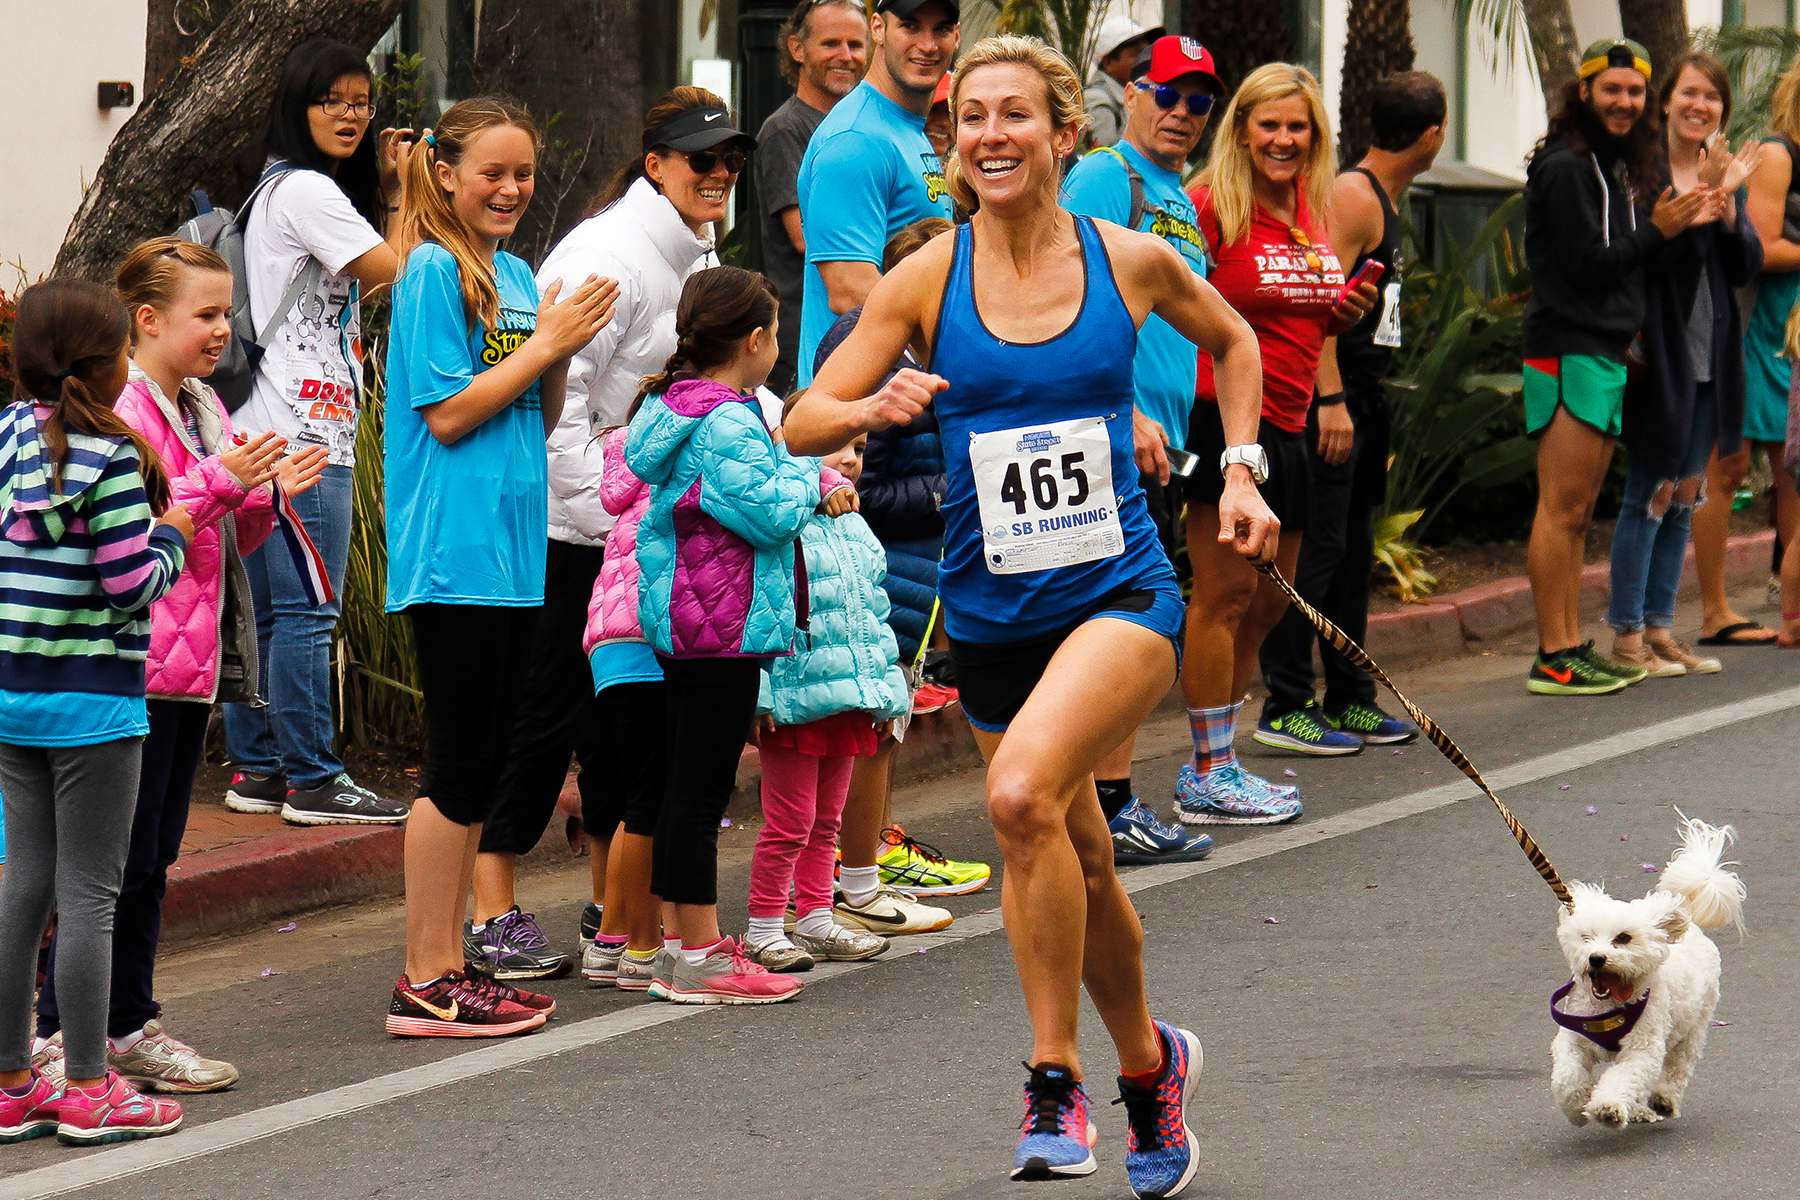 Drea Schettler, 38, of Santa Barbara, and her dog finished eighth overall in the Dog Mile with a time of 5:31.